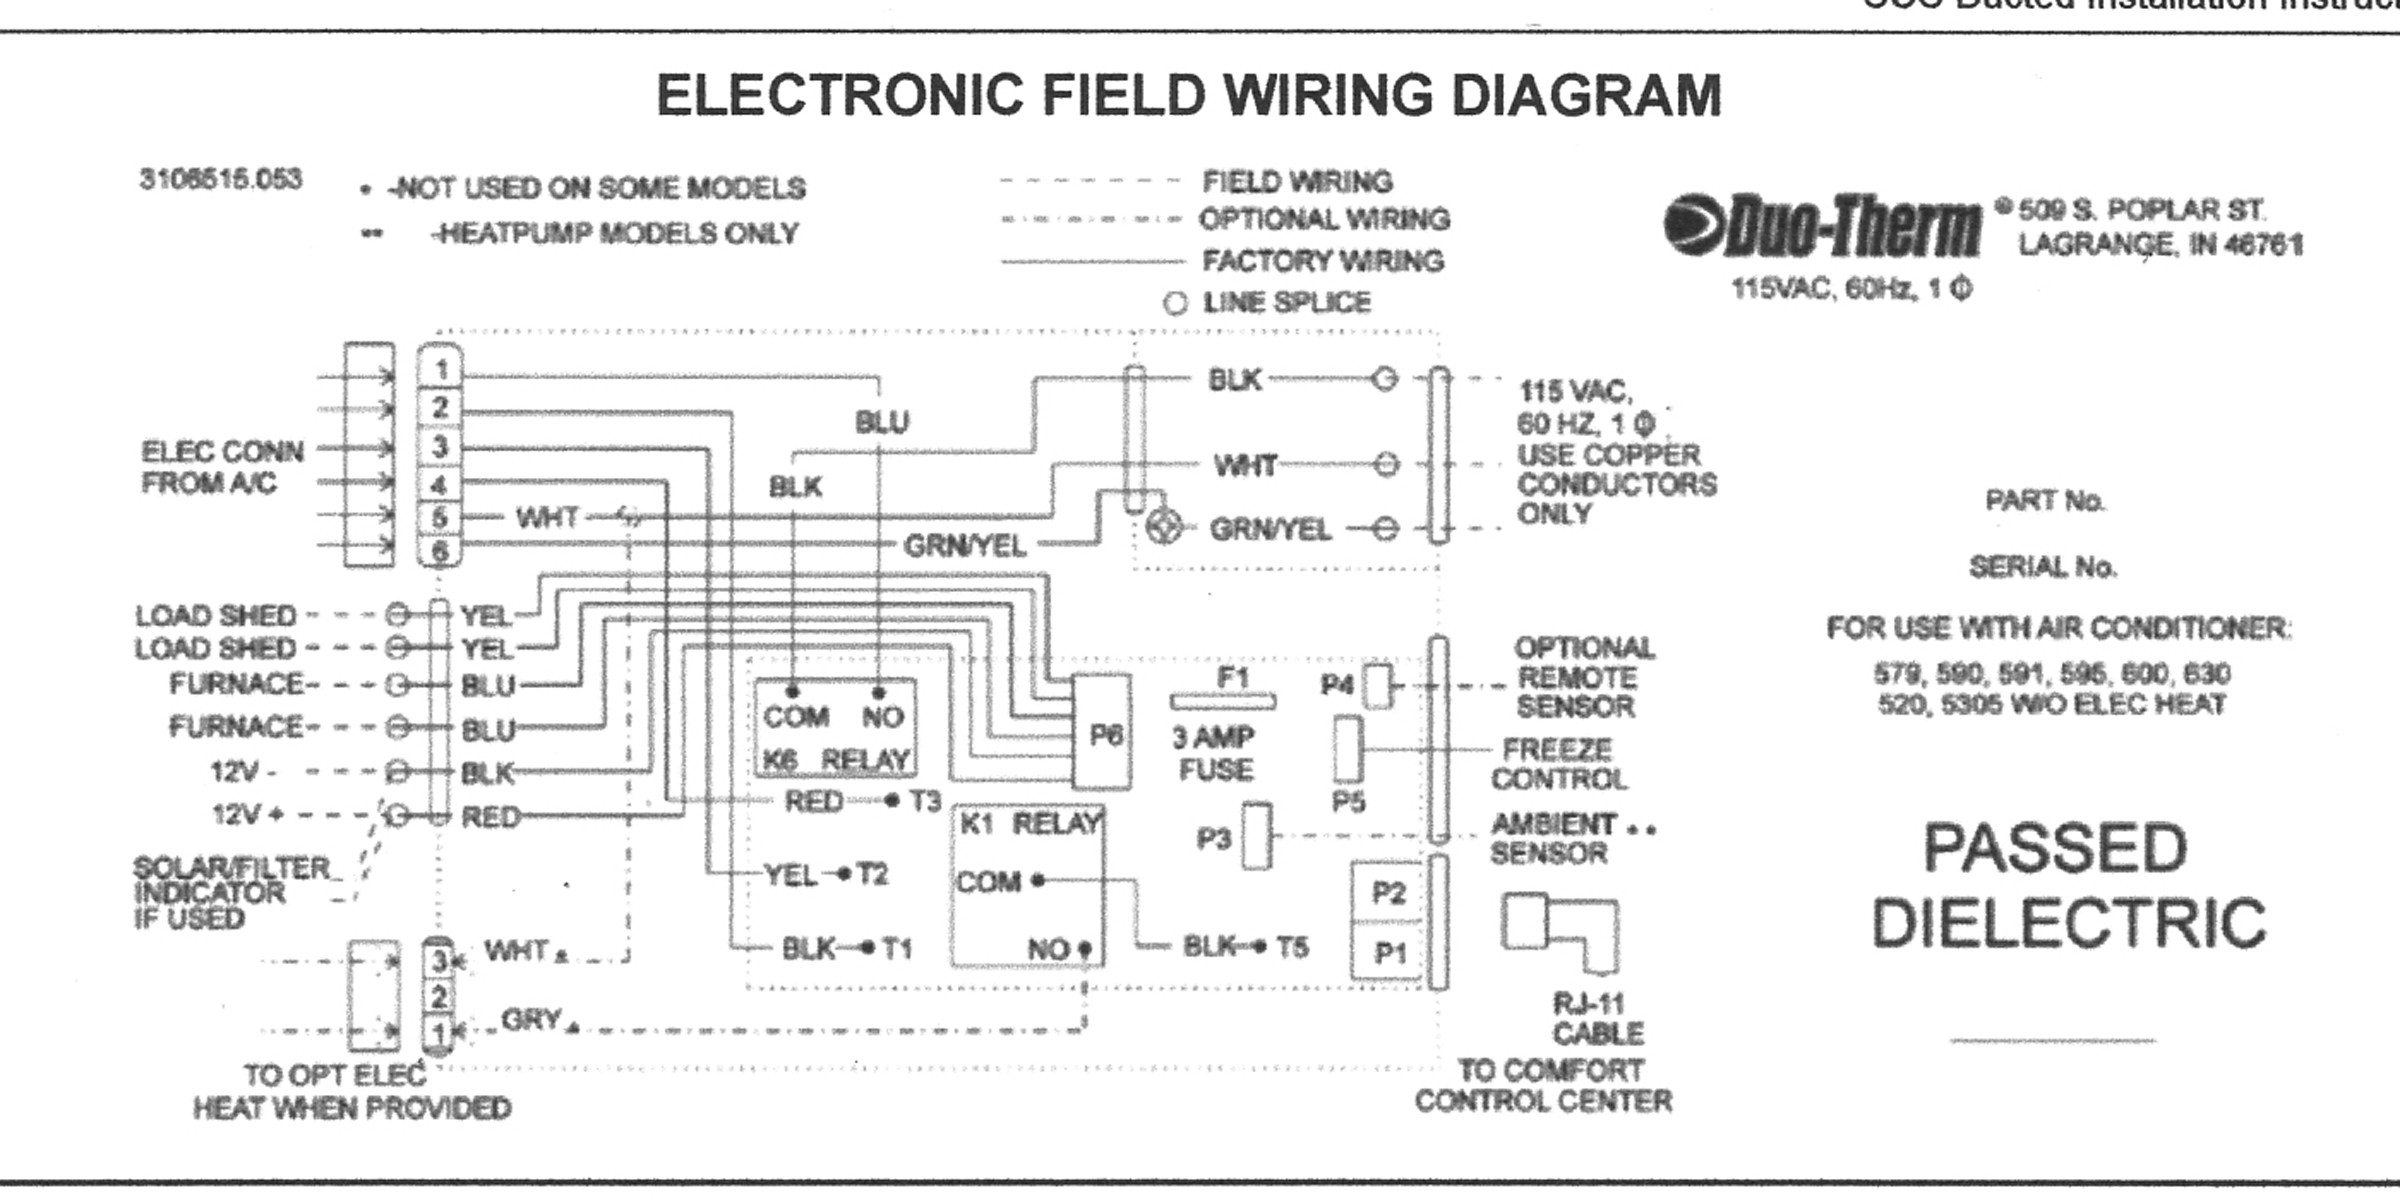 duo therm rv furnace thermostat wiring diagram duo therm rv furnace thermostat wiring diagram